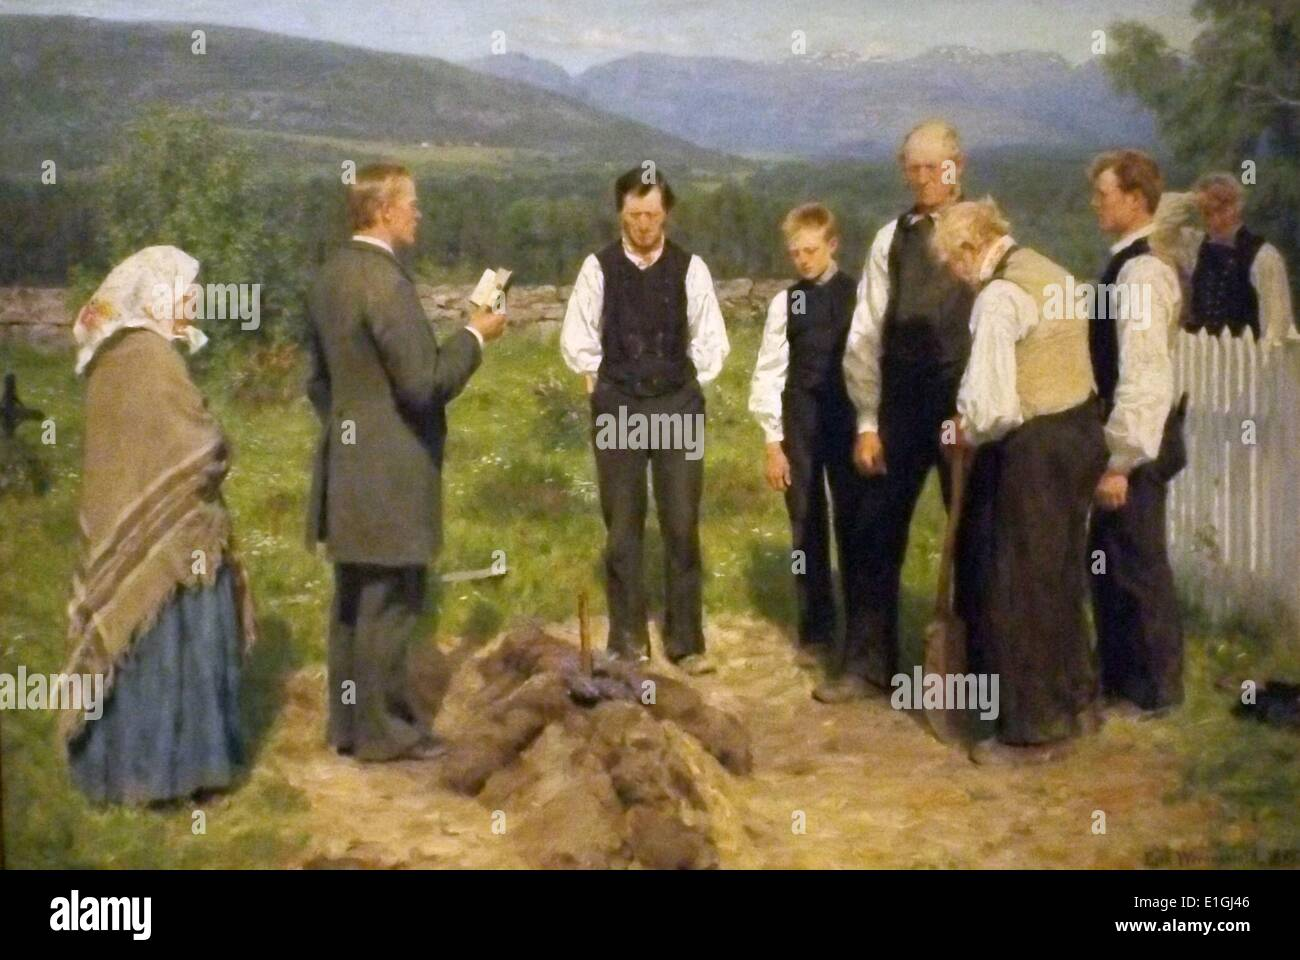 Peasant Burial 1883-85 by Erik Werenskiold (1855-1938), oil on canvas. - Stock Image